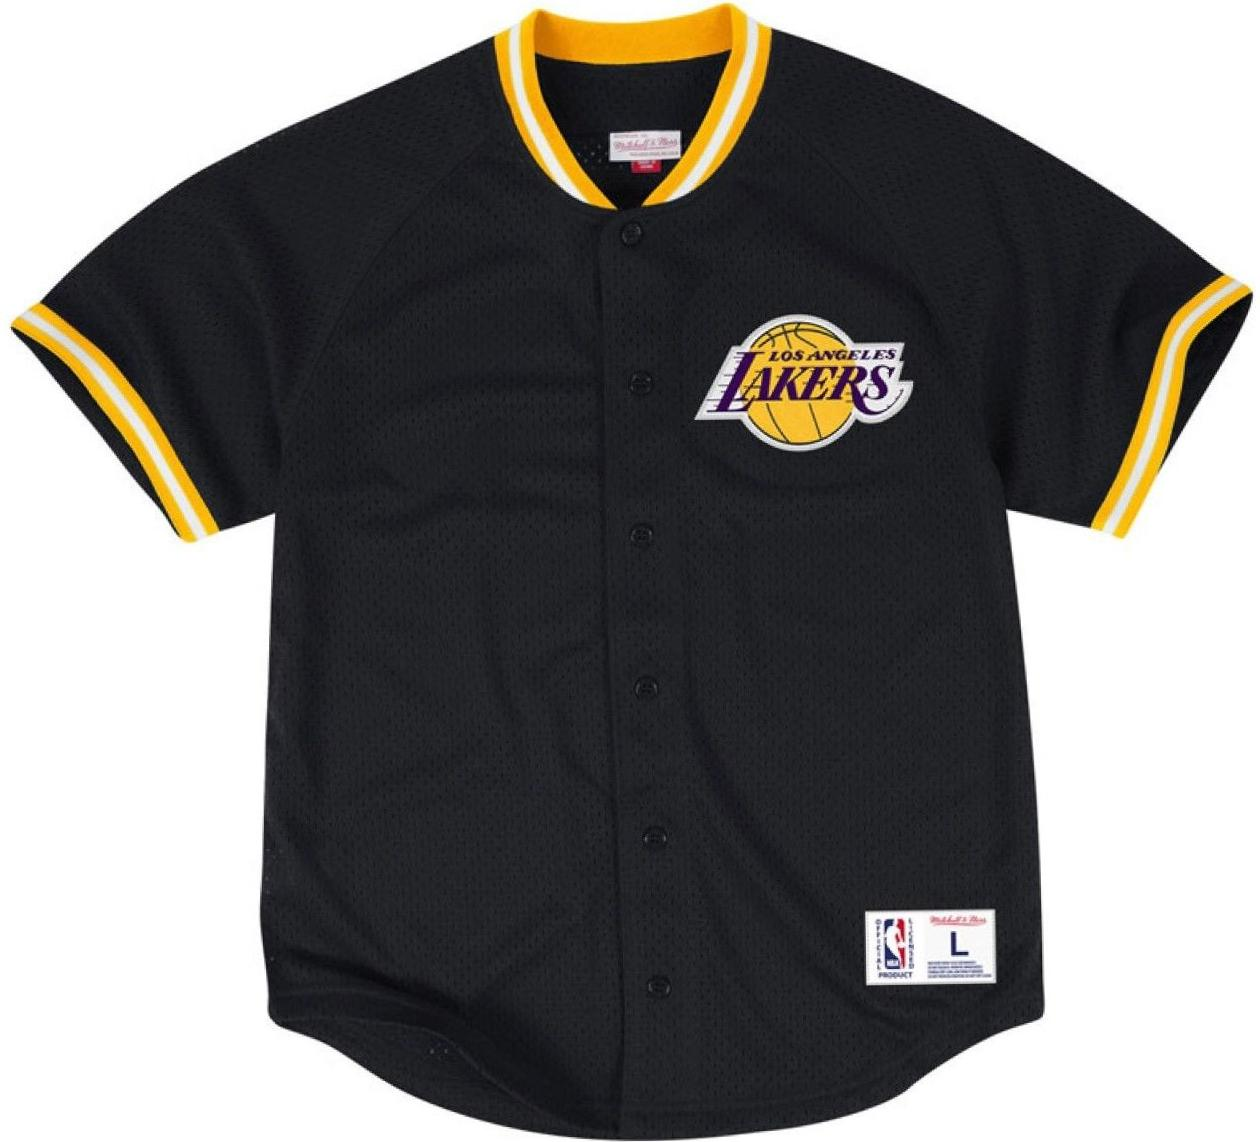 Lakers Mesh Baseball Jersey